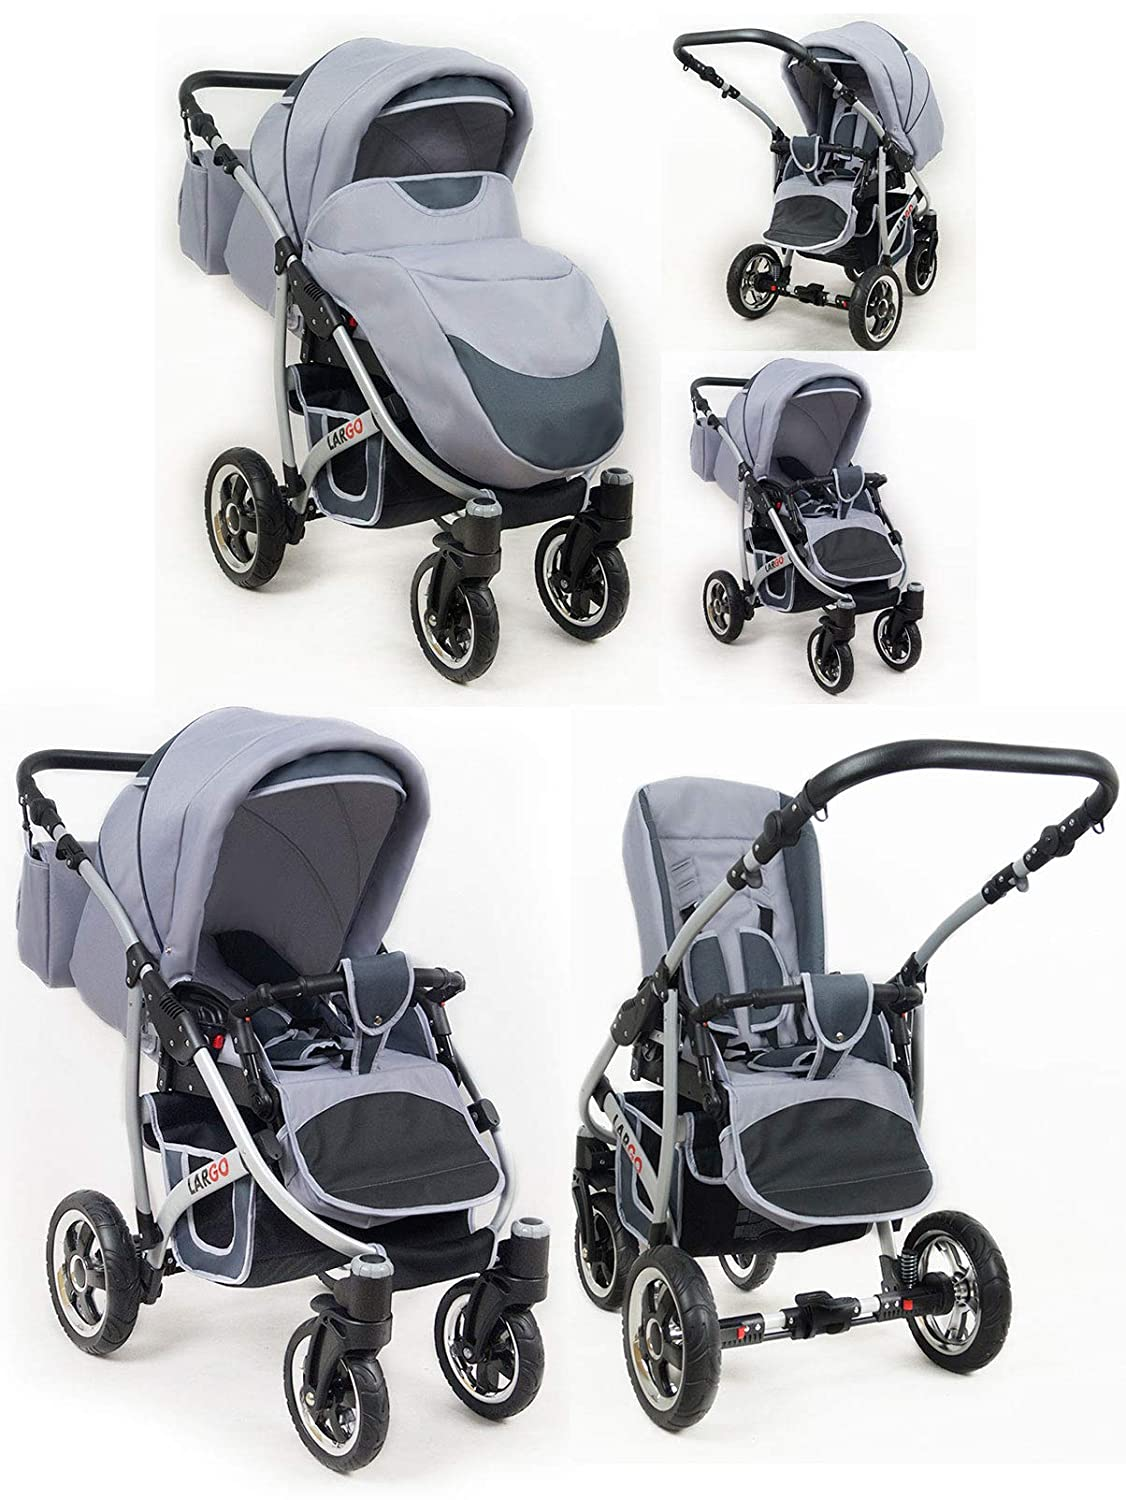 Kinderwagen Largo,3 in 1 Set Wanne Buggy Babyschale Autositz mit Zubeh/ör Black Aqua